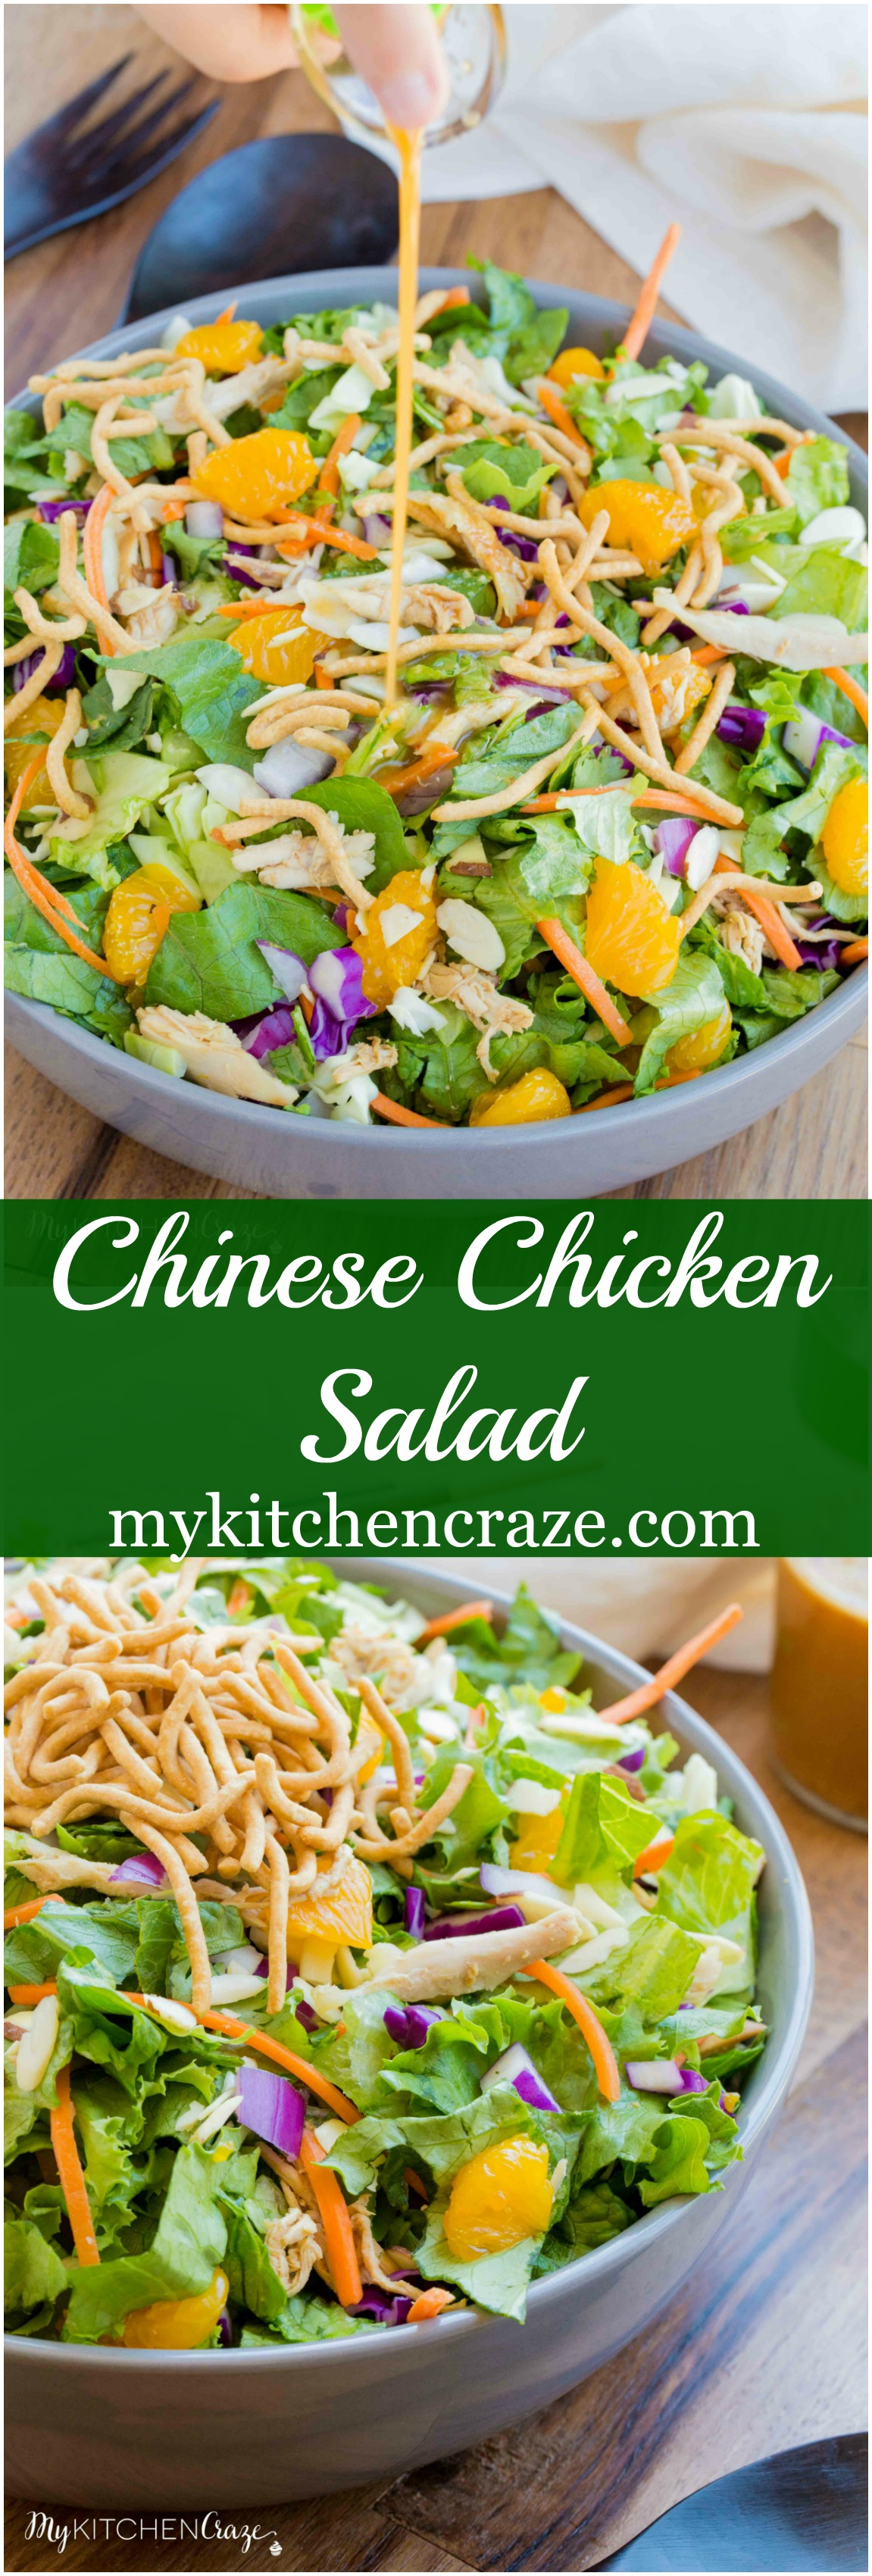 Chicken And Vegetable Salad With Chinese Sesame Sauce Recipe ...